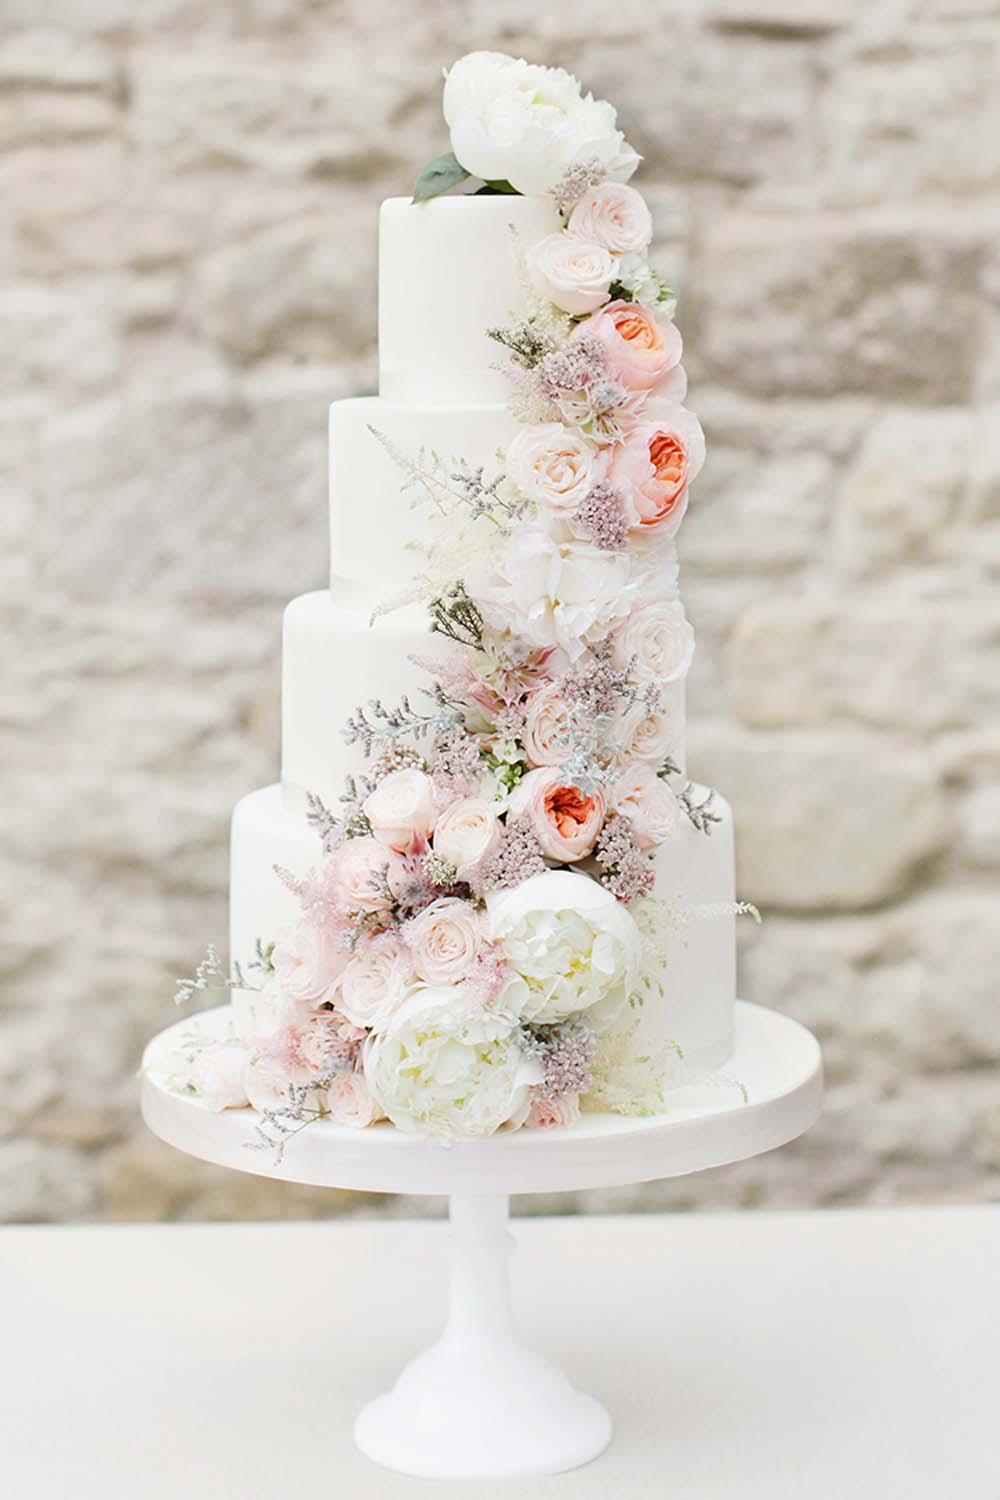 Fresh flower wedding cakes that could rival harry and meghans fresh flower wedding cakes that could rival harry and meghans fresh flower wedding cake junglespirit